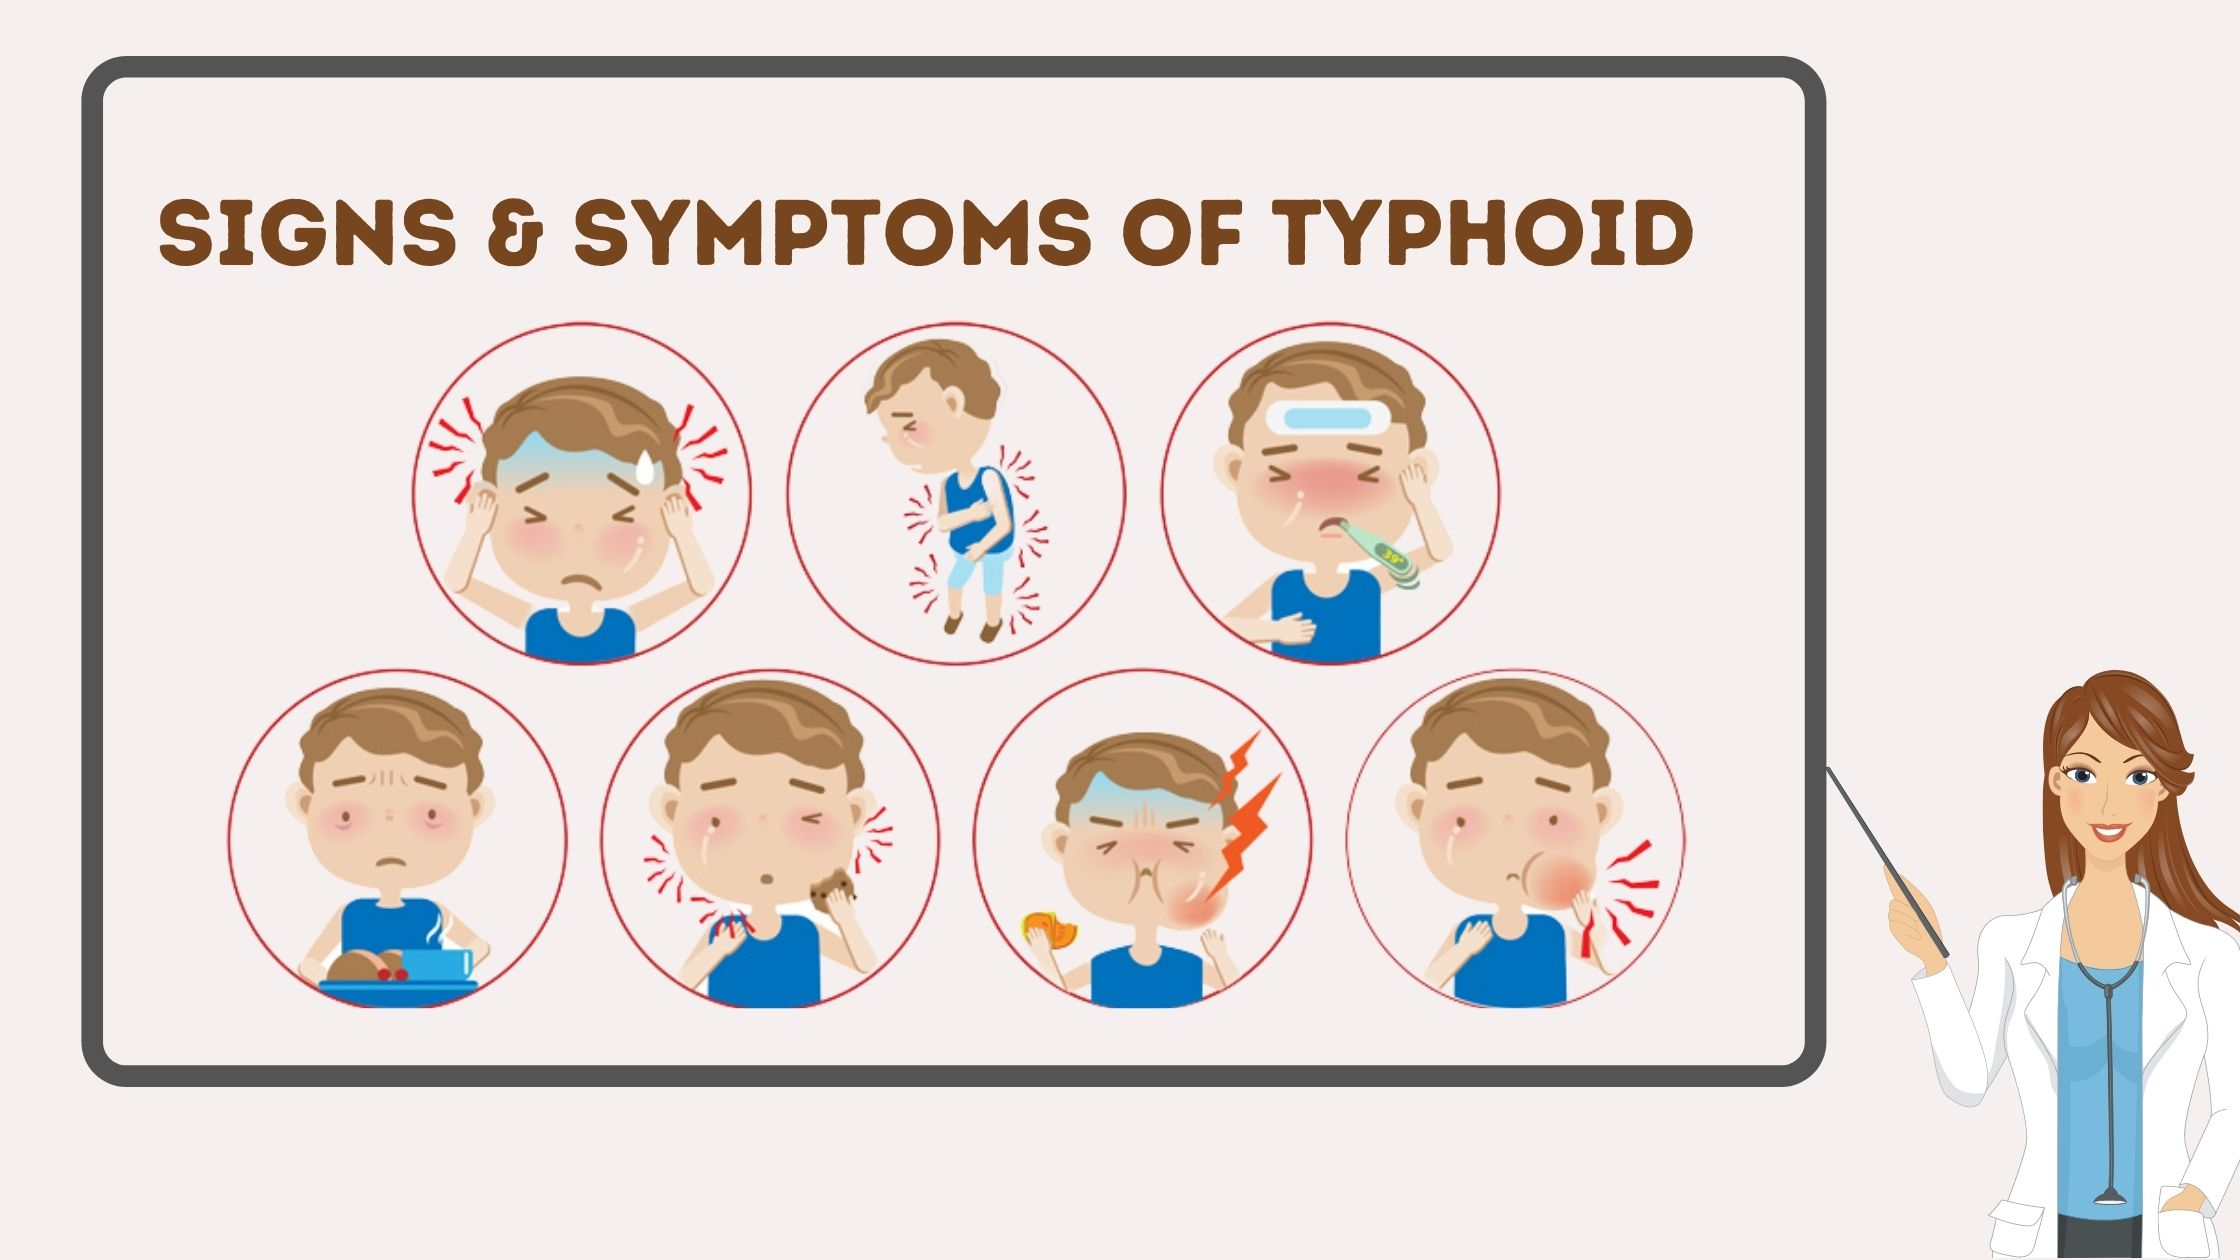 Signs and symptoms of typhoid